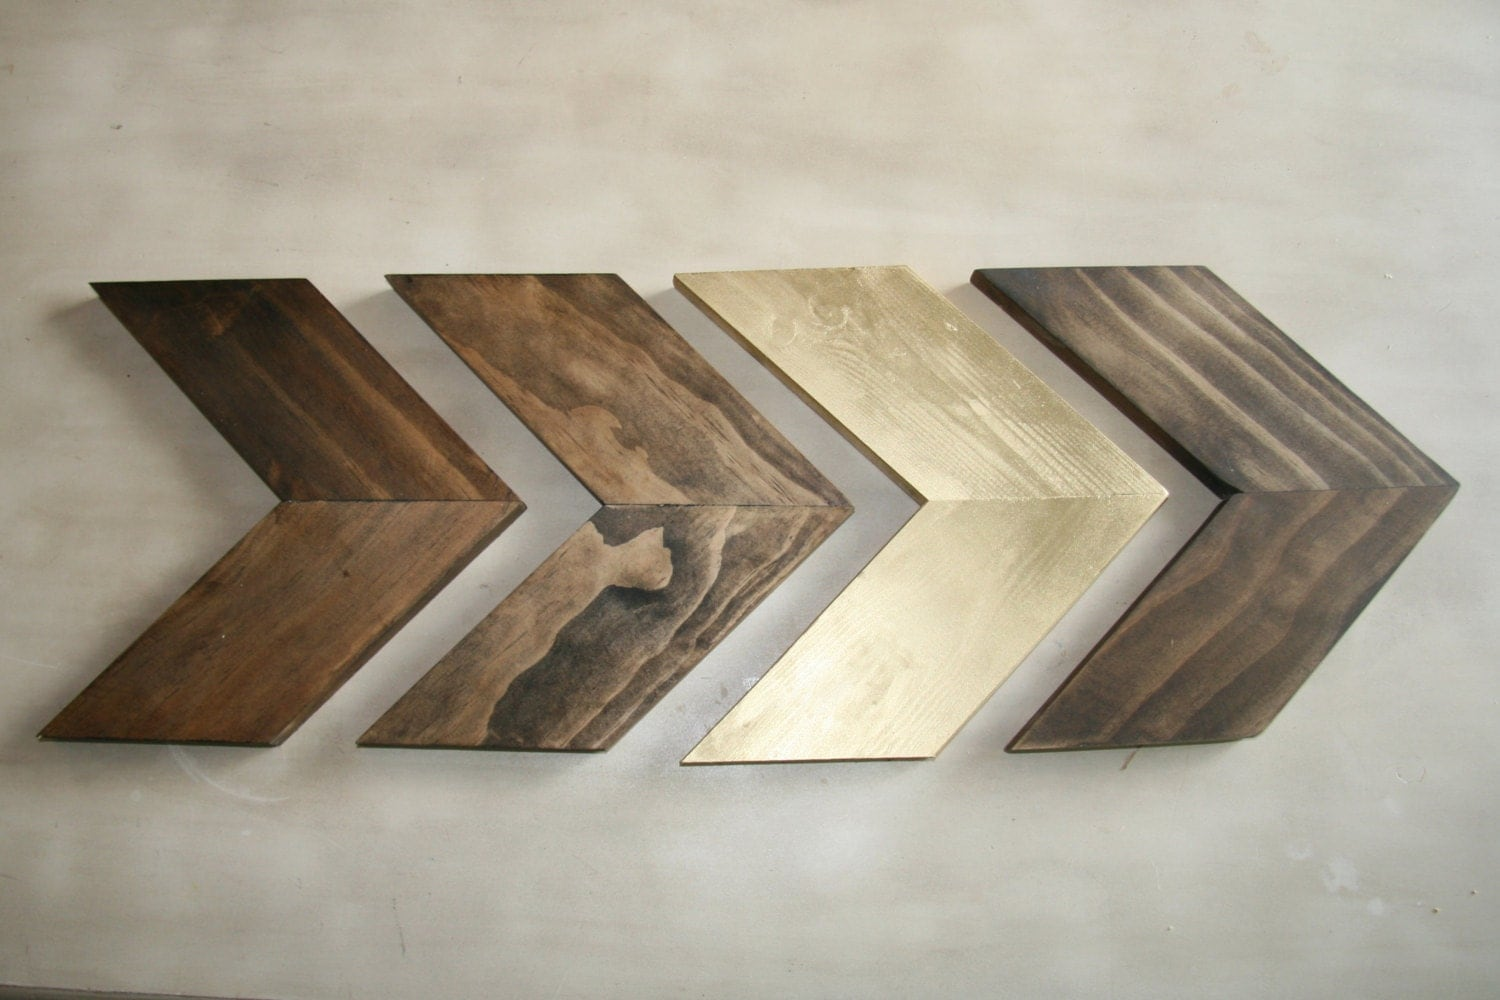 Wall Decor Wooden Arrows : Wood chevron arrows arrow wall art home decor